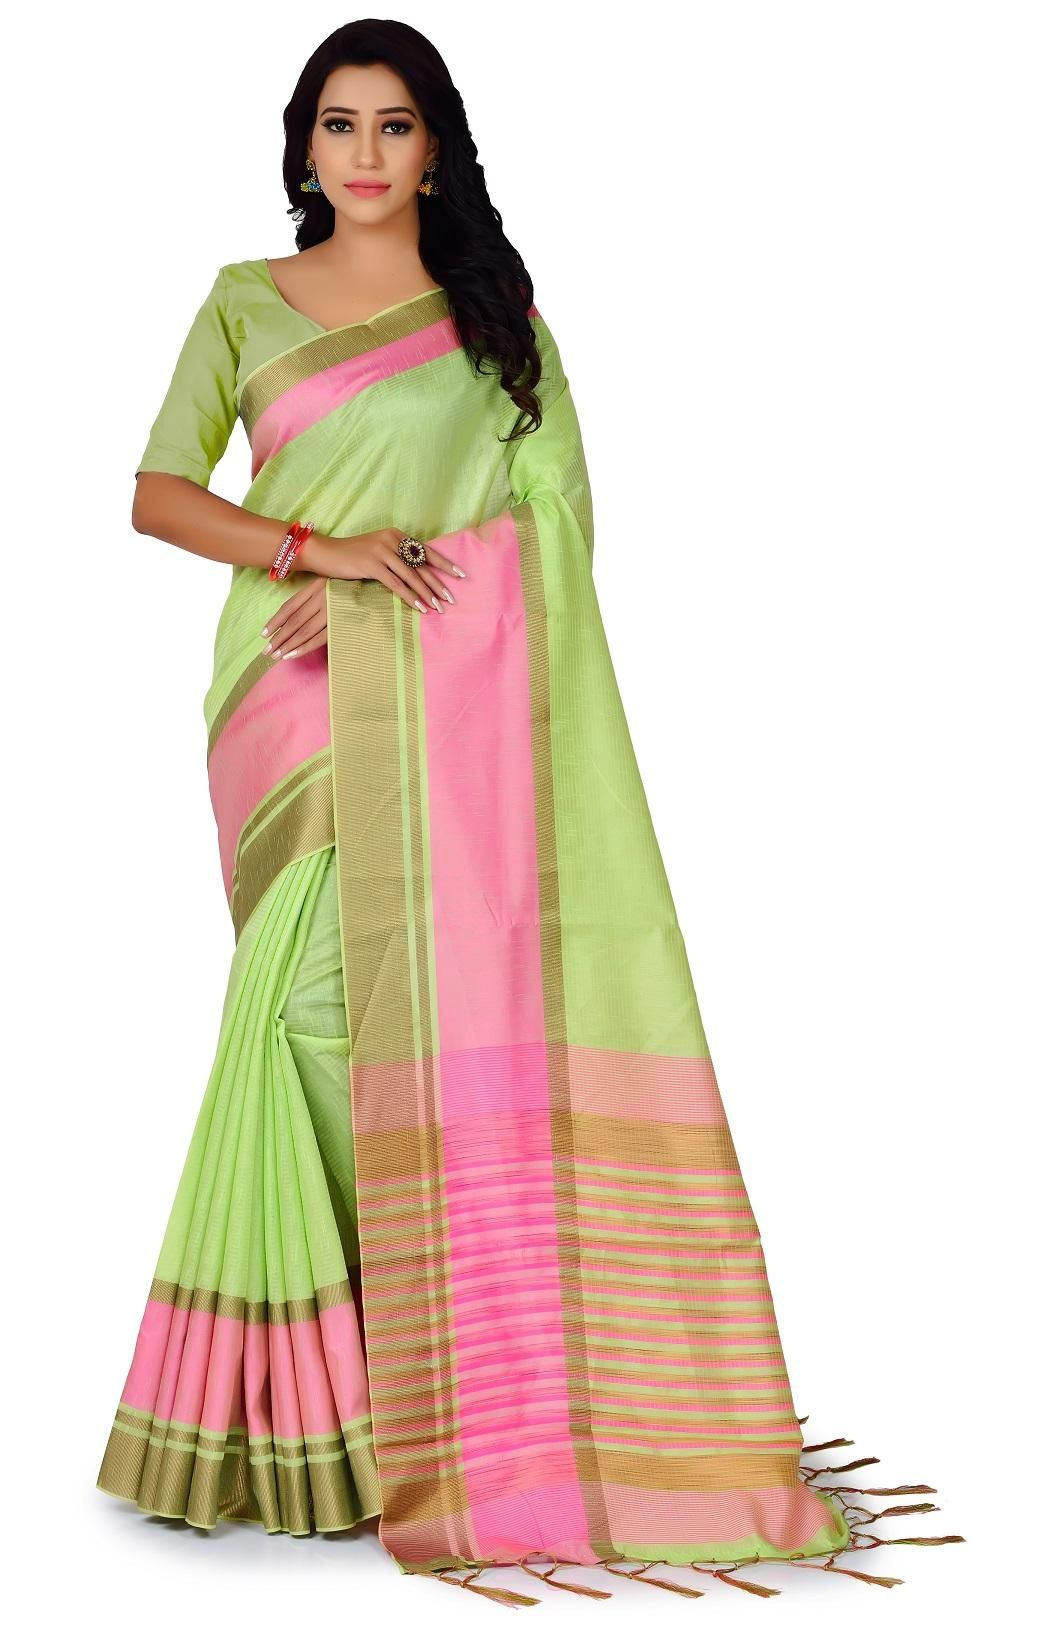 Lady's Trendy Polyester Cotton Solid With Border Regular Parrot Saree